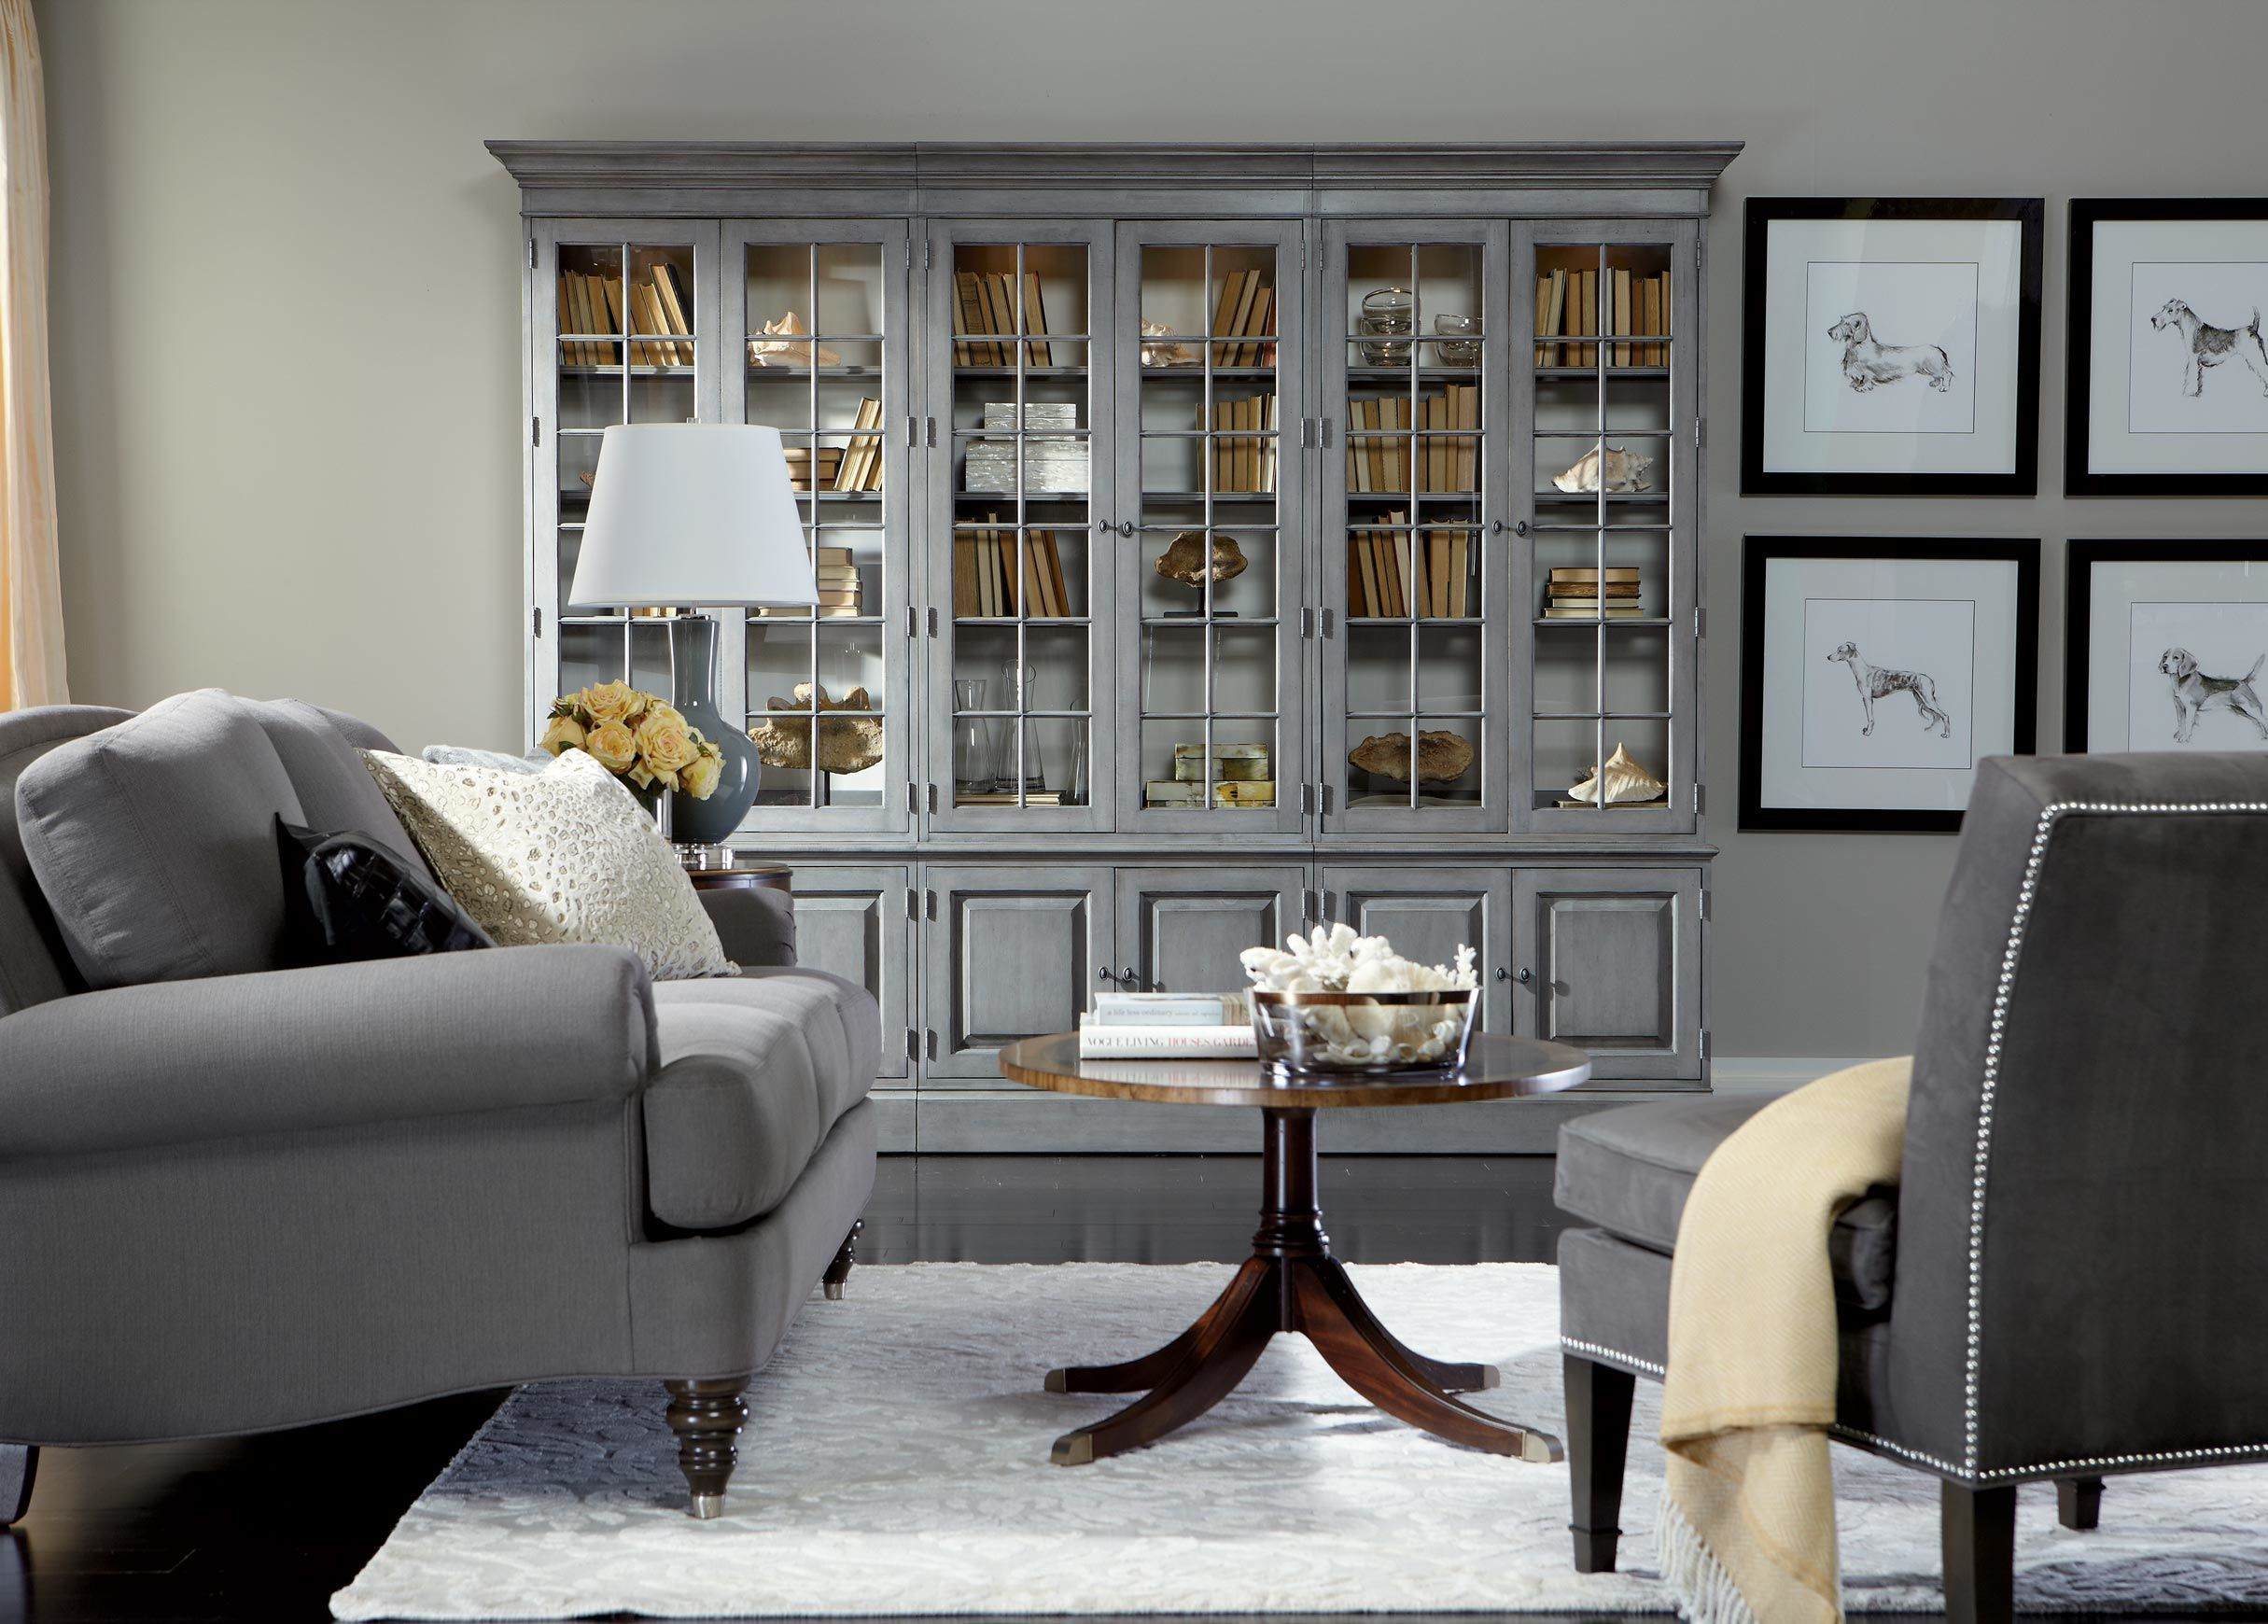 ethan allen dining room sets. Villa Triple Library Bookcase  Ethan Allen Love this look for the library dining Best 25 allen ideas on Pinterest Living room